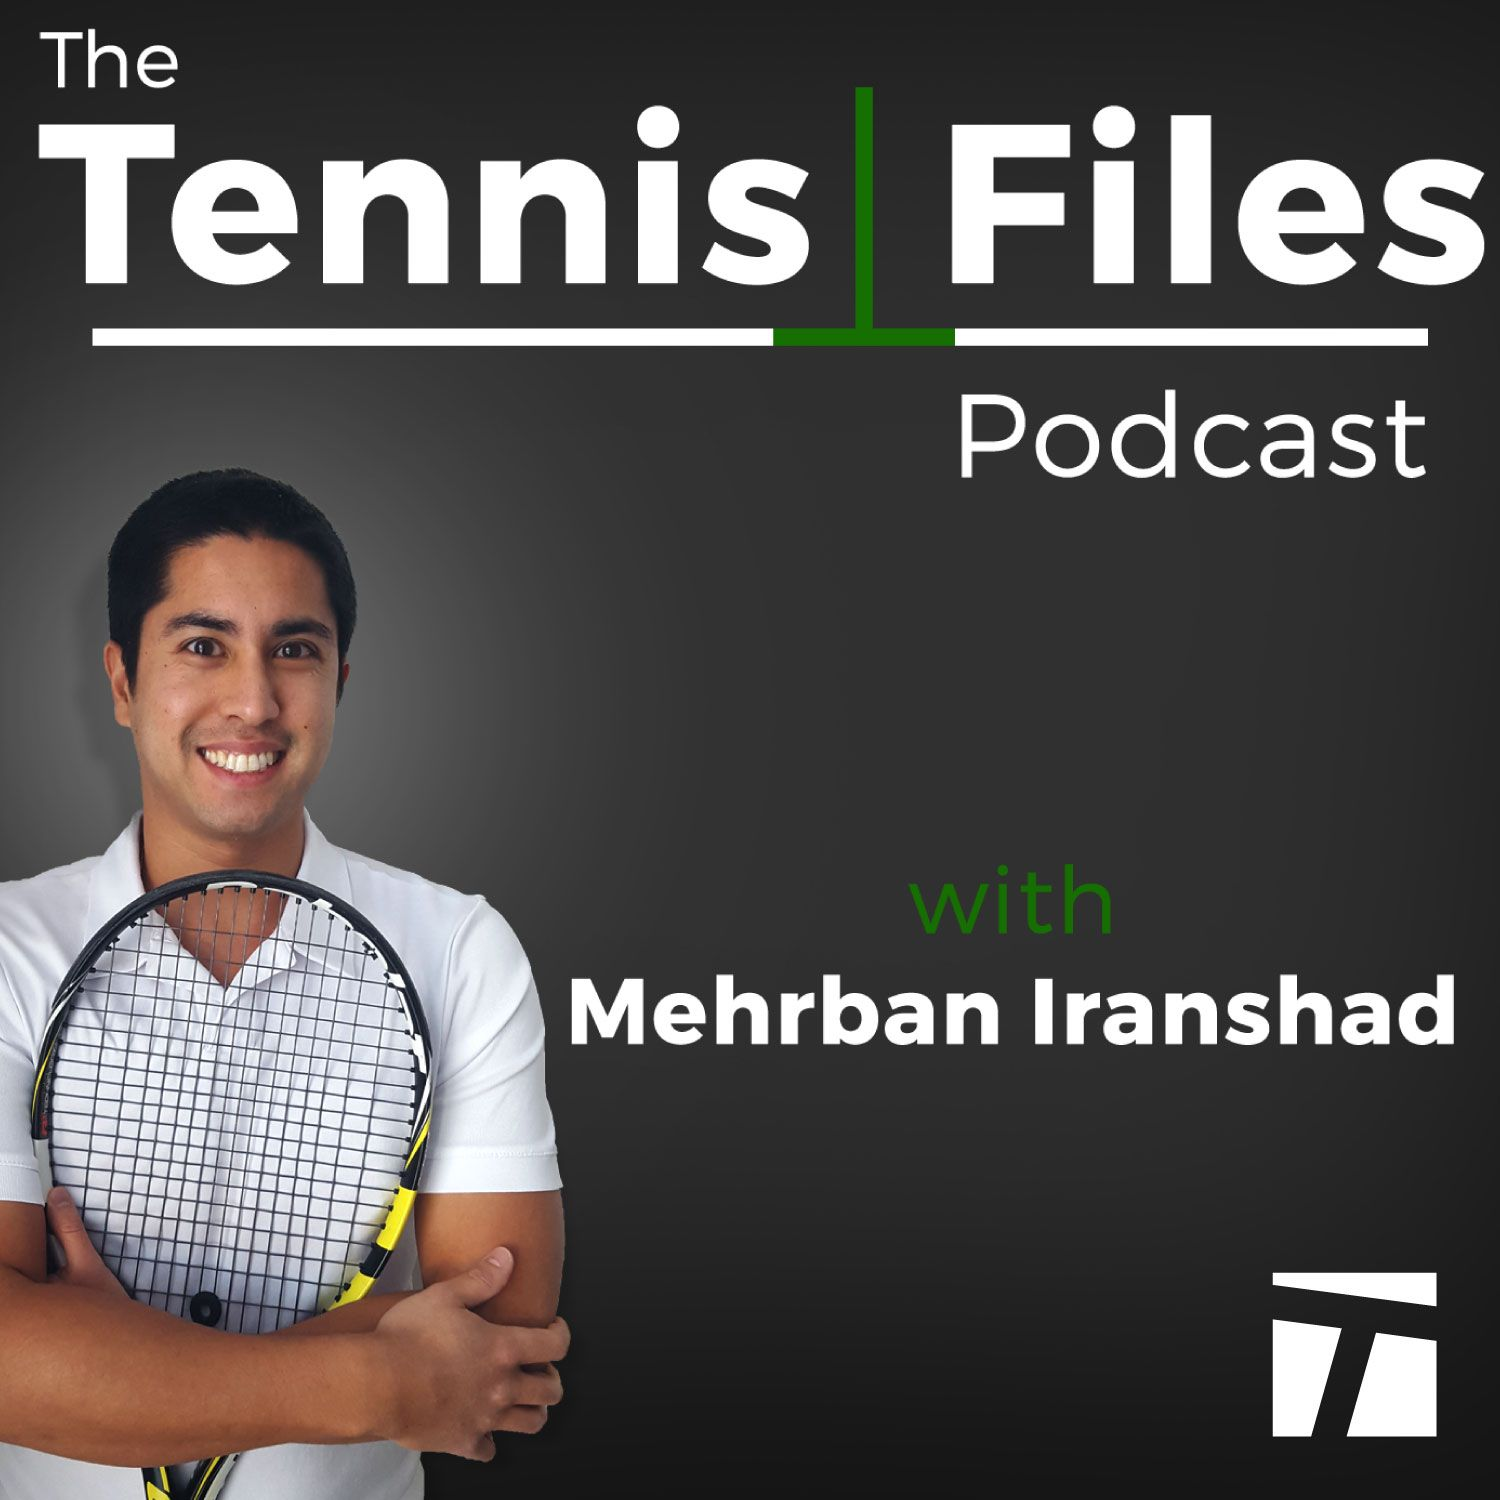 TFP 193: [Tennis Summit 2021 Preview] - How to Level Up Your Singles and Doubles Game with Annacone, Macci, and Reidy